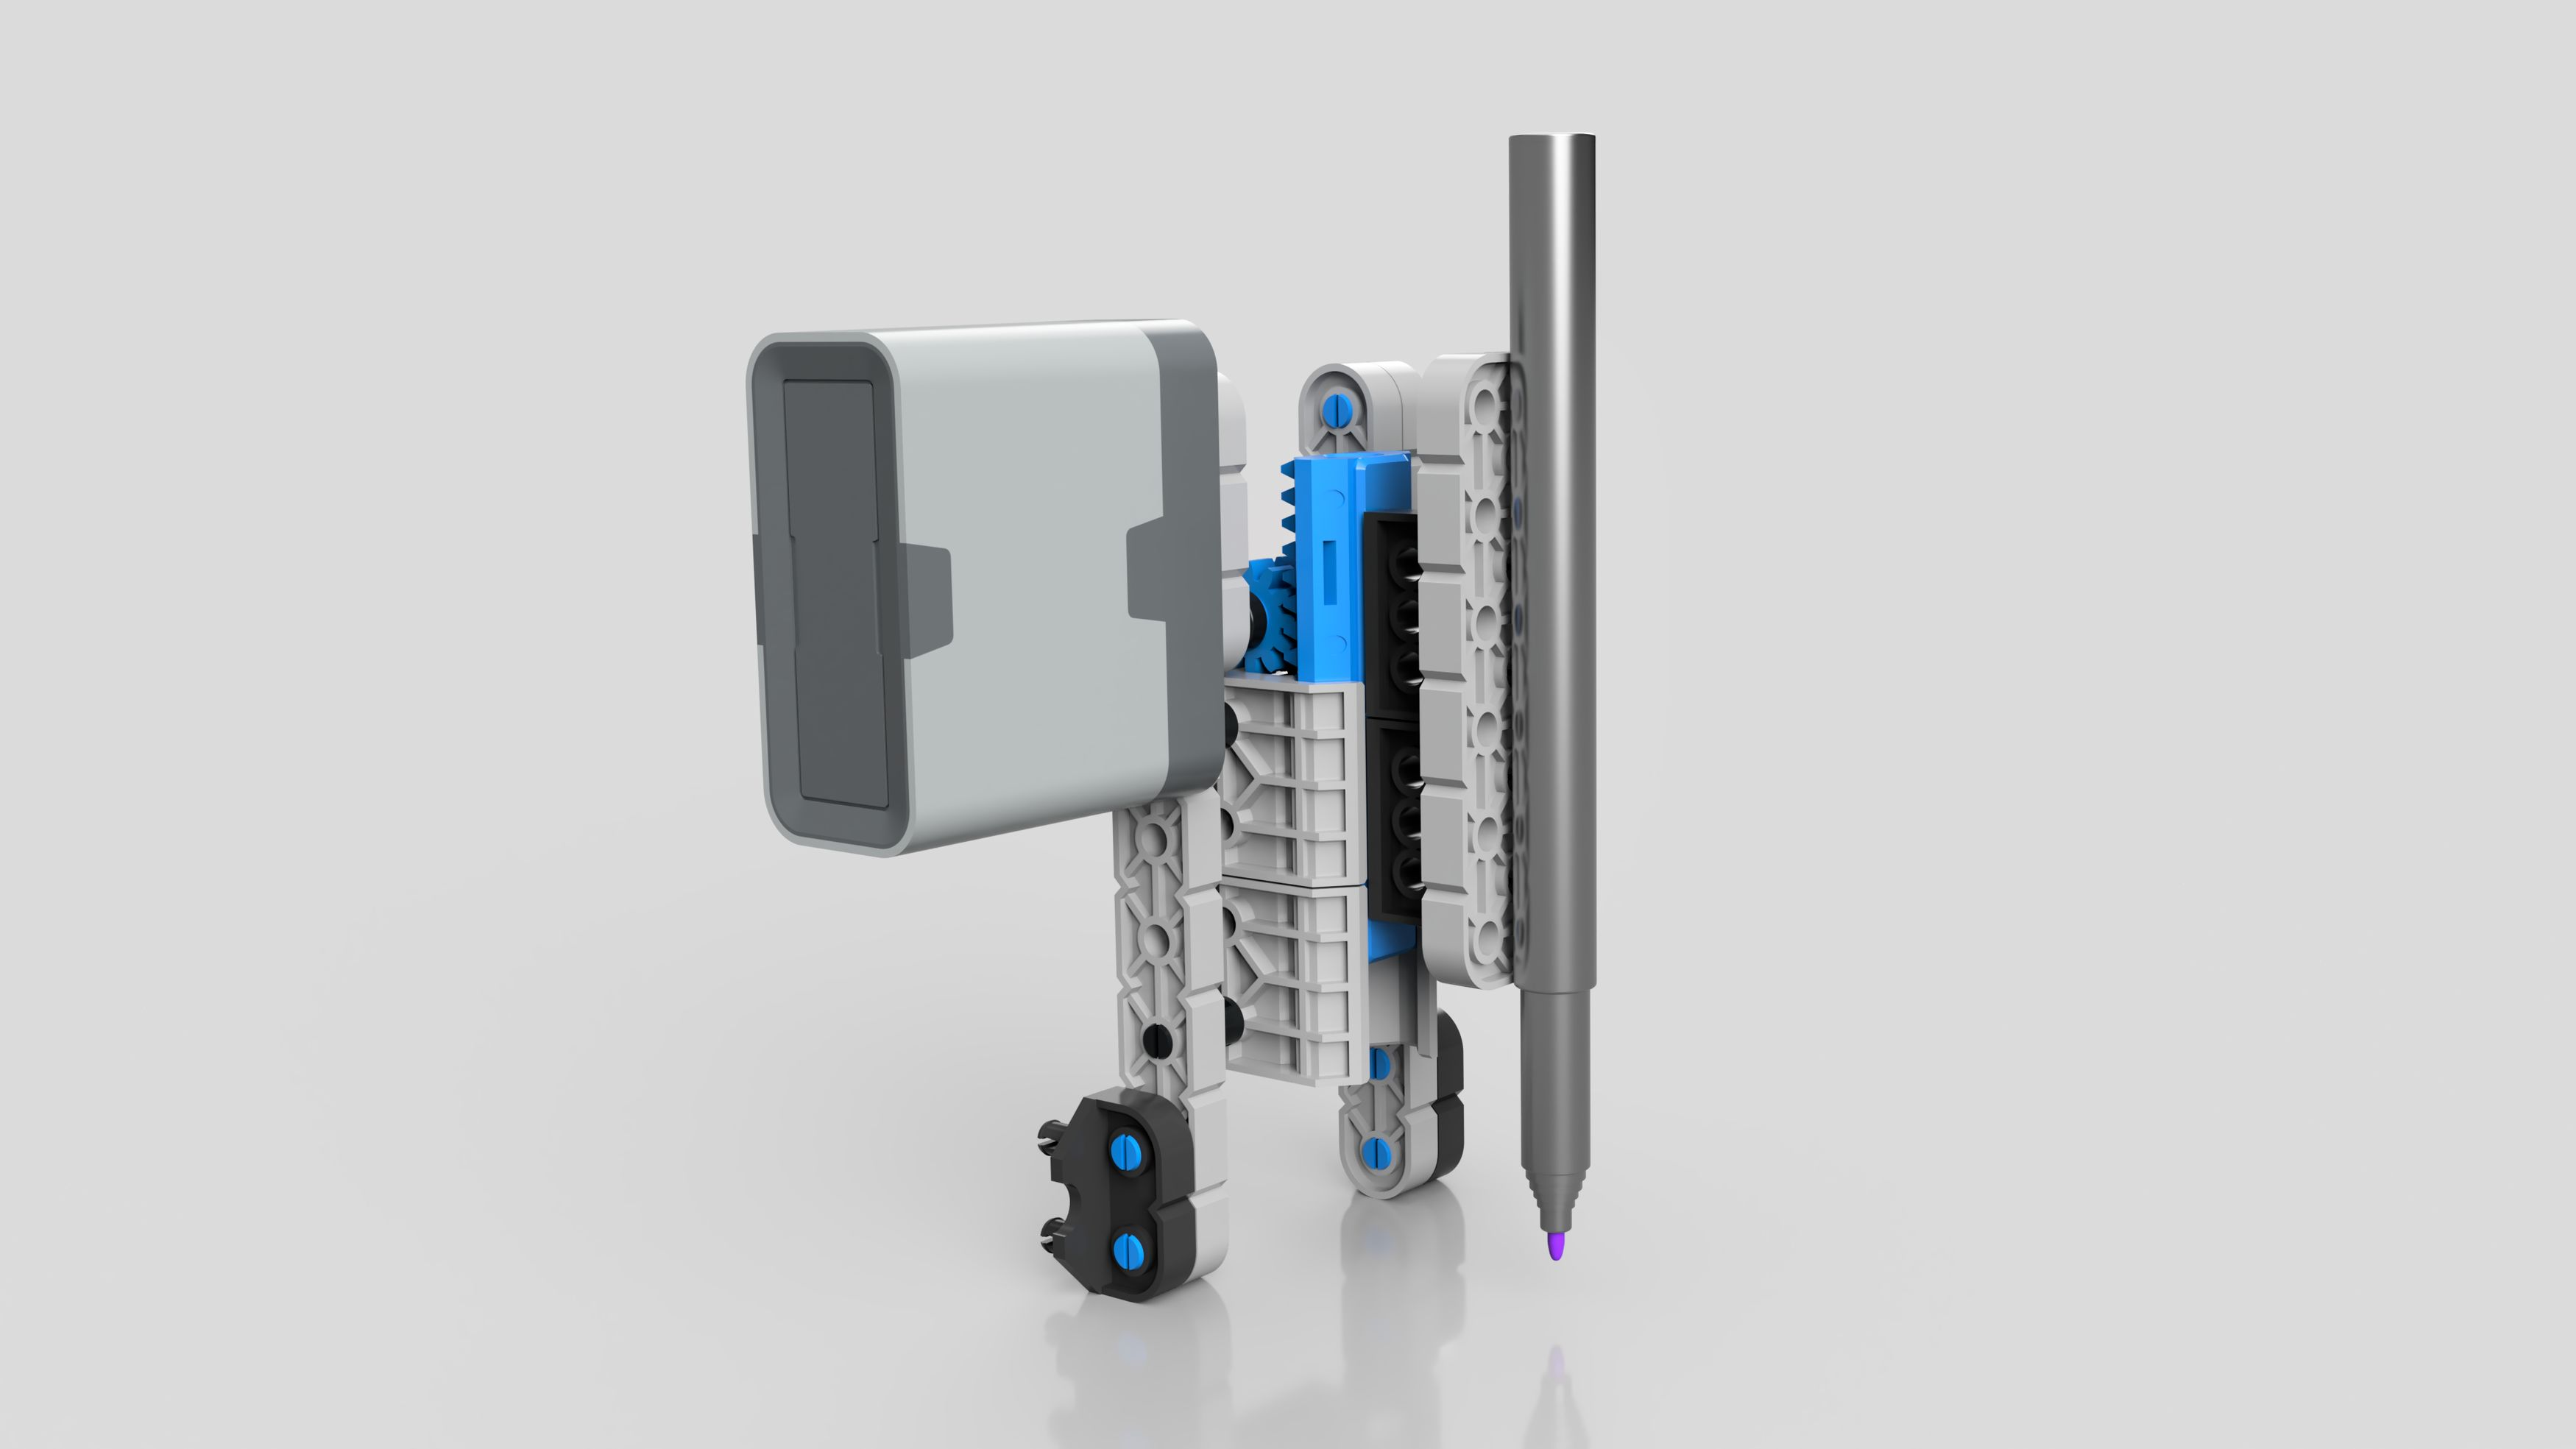 Robotic-pen-vex-iq---vexcode-vr-2020-may-21-04-41-29pm-000-customizedview3239018267-png-3500-3500